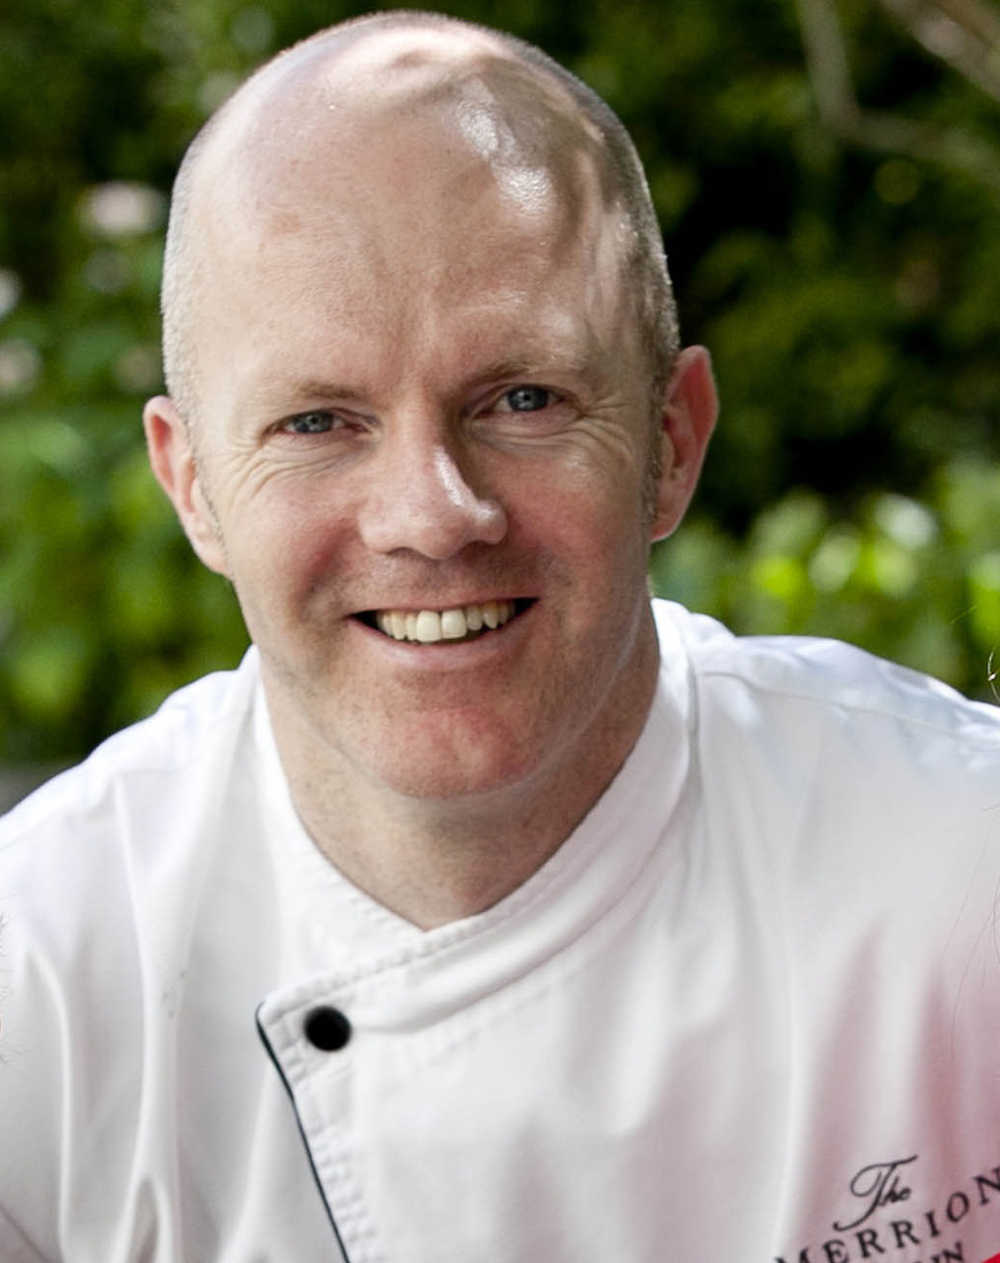 Paul Kelly - Pastry Chef at the Merrion